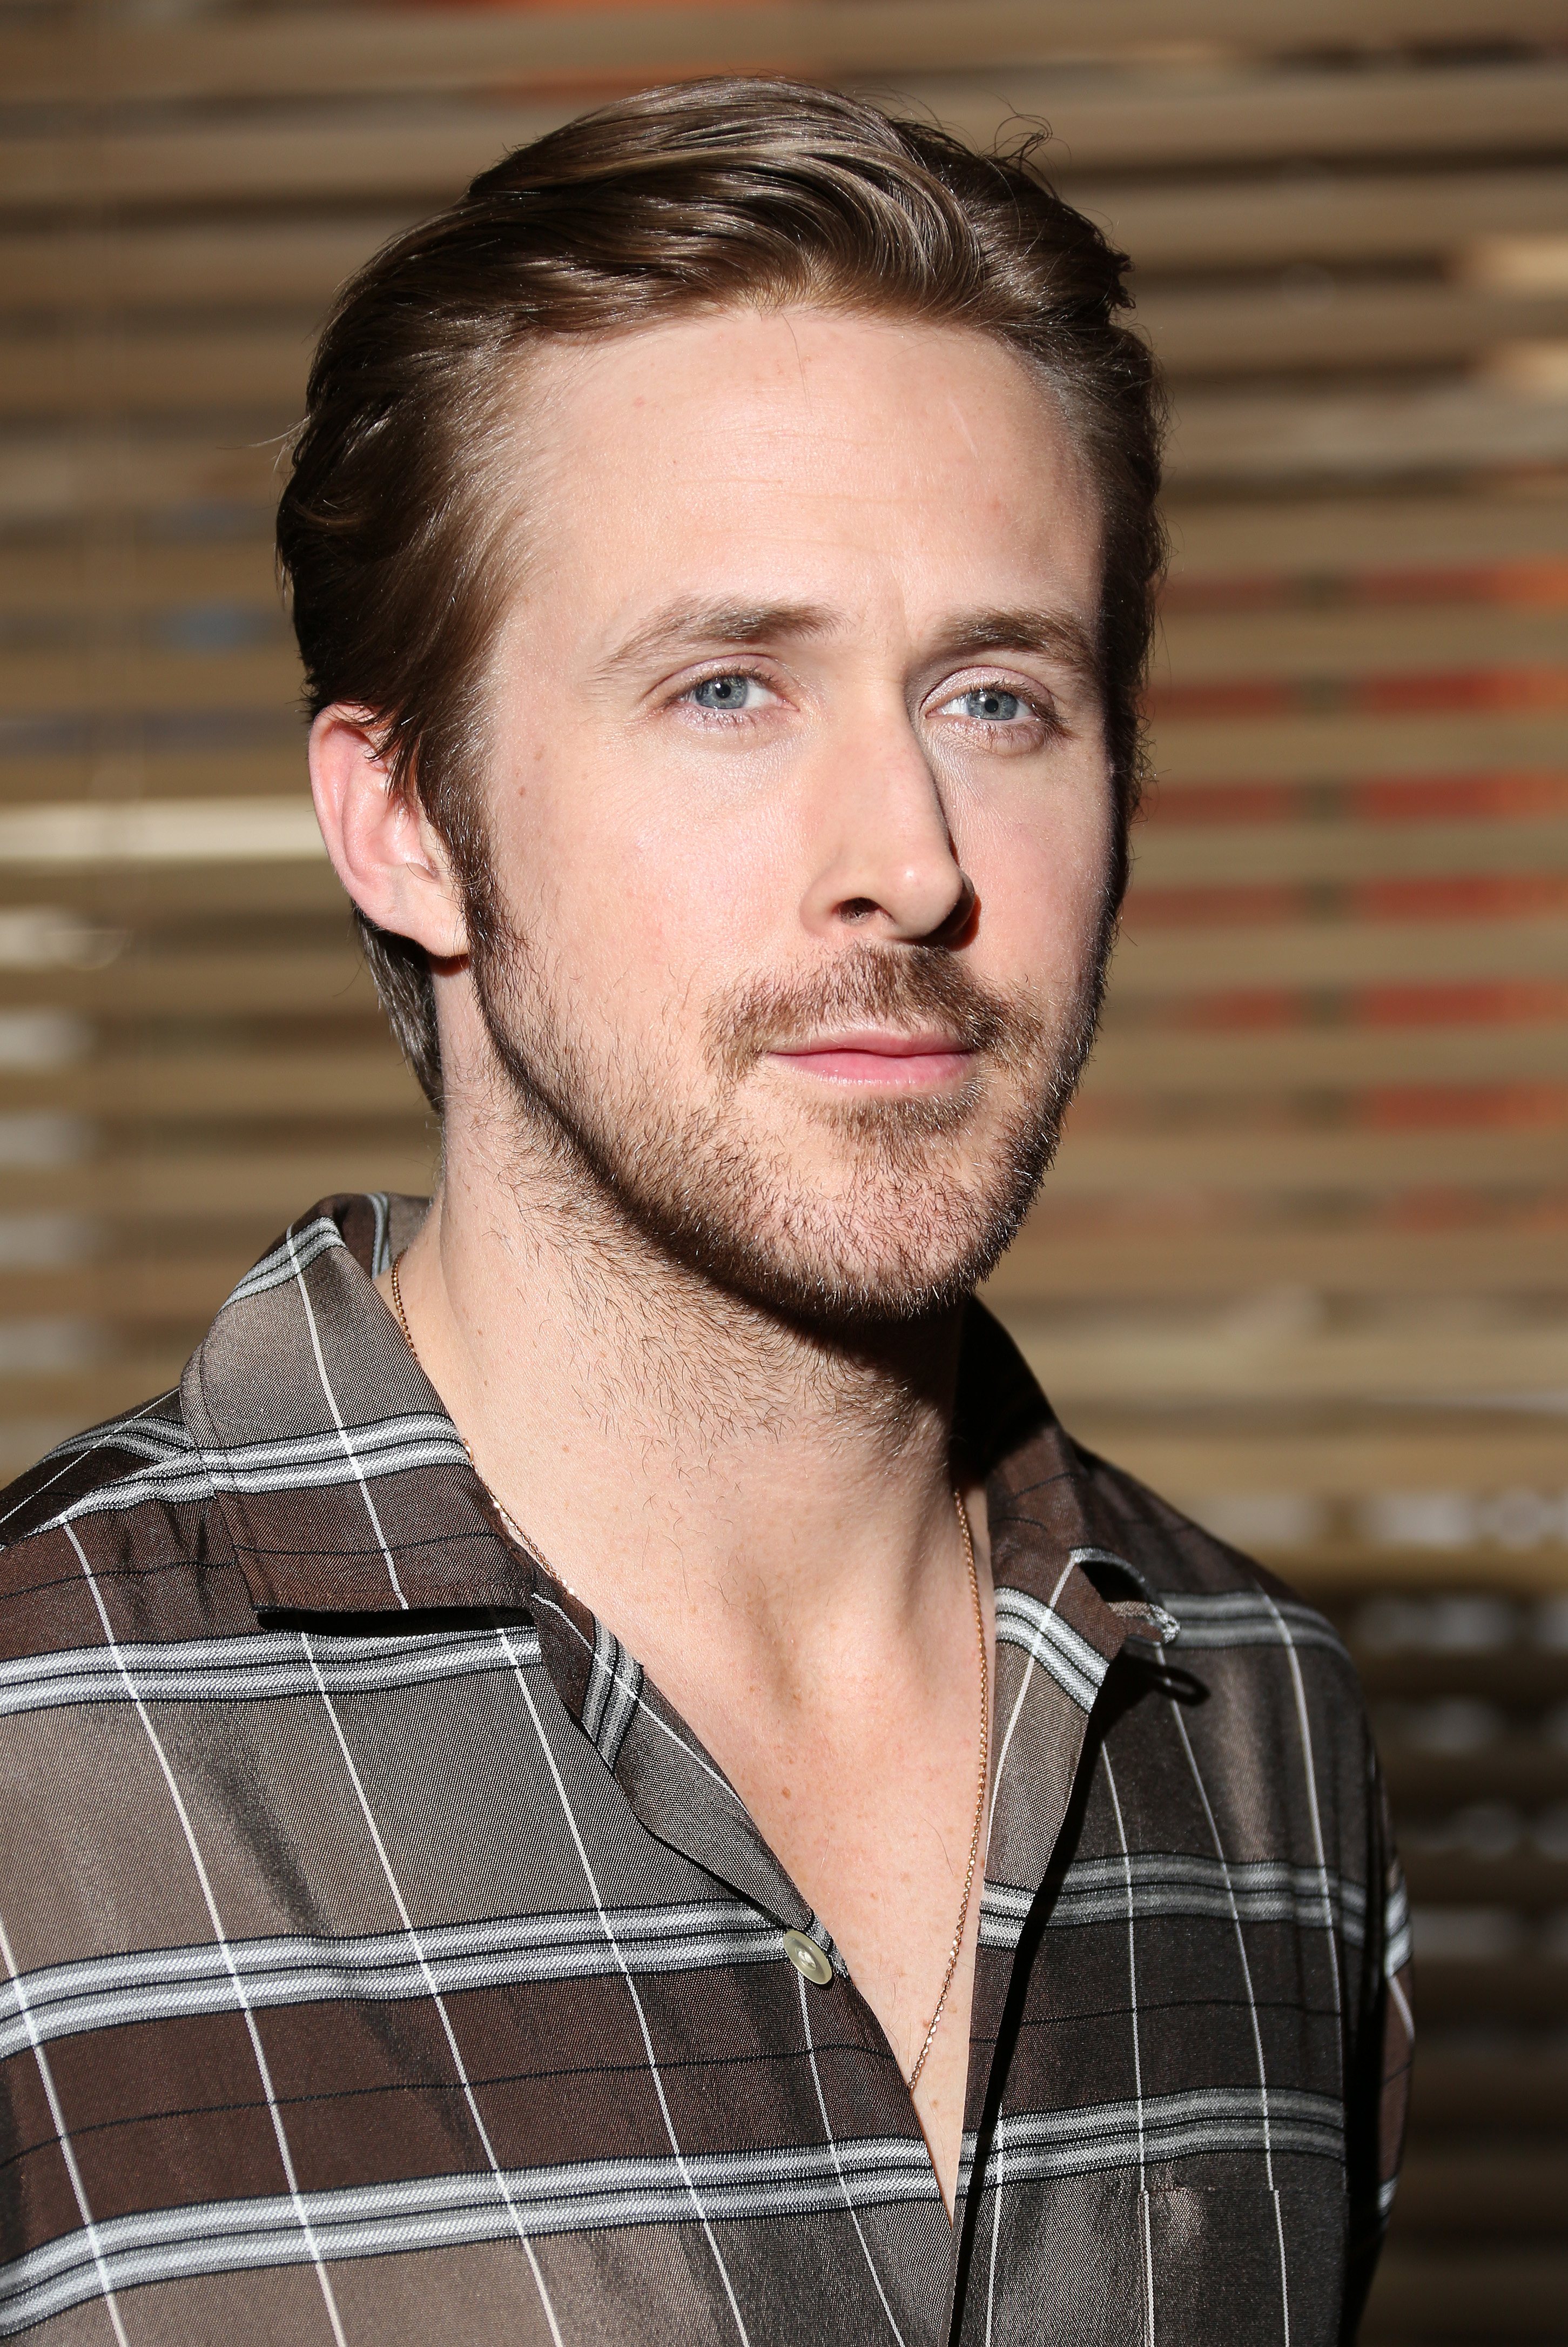 Ryan Gosling at the directorial debut of 'Lost River' in London on April 9, 2015.